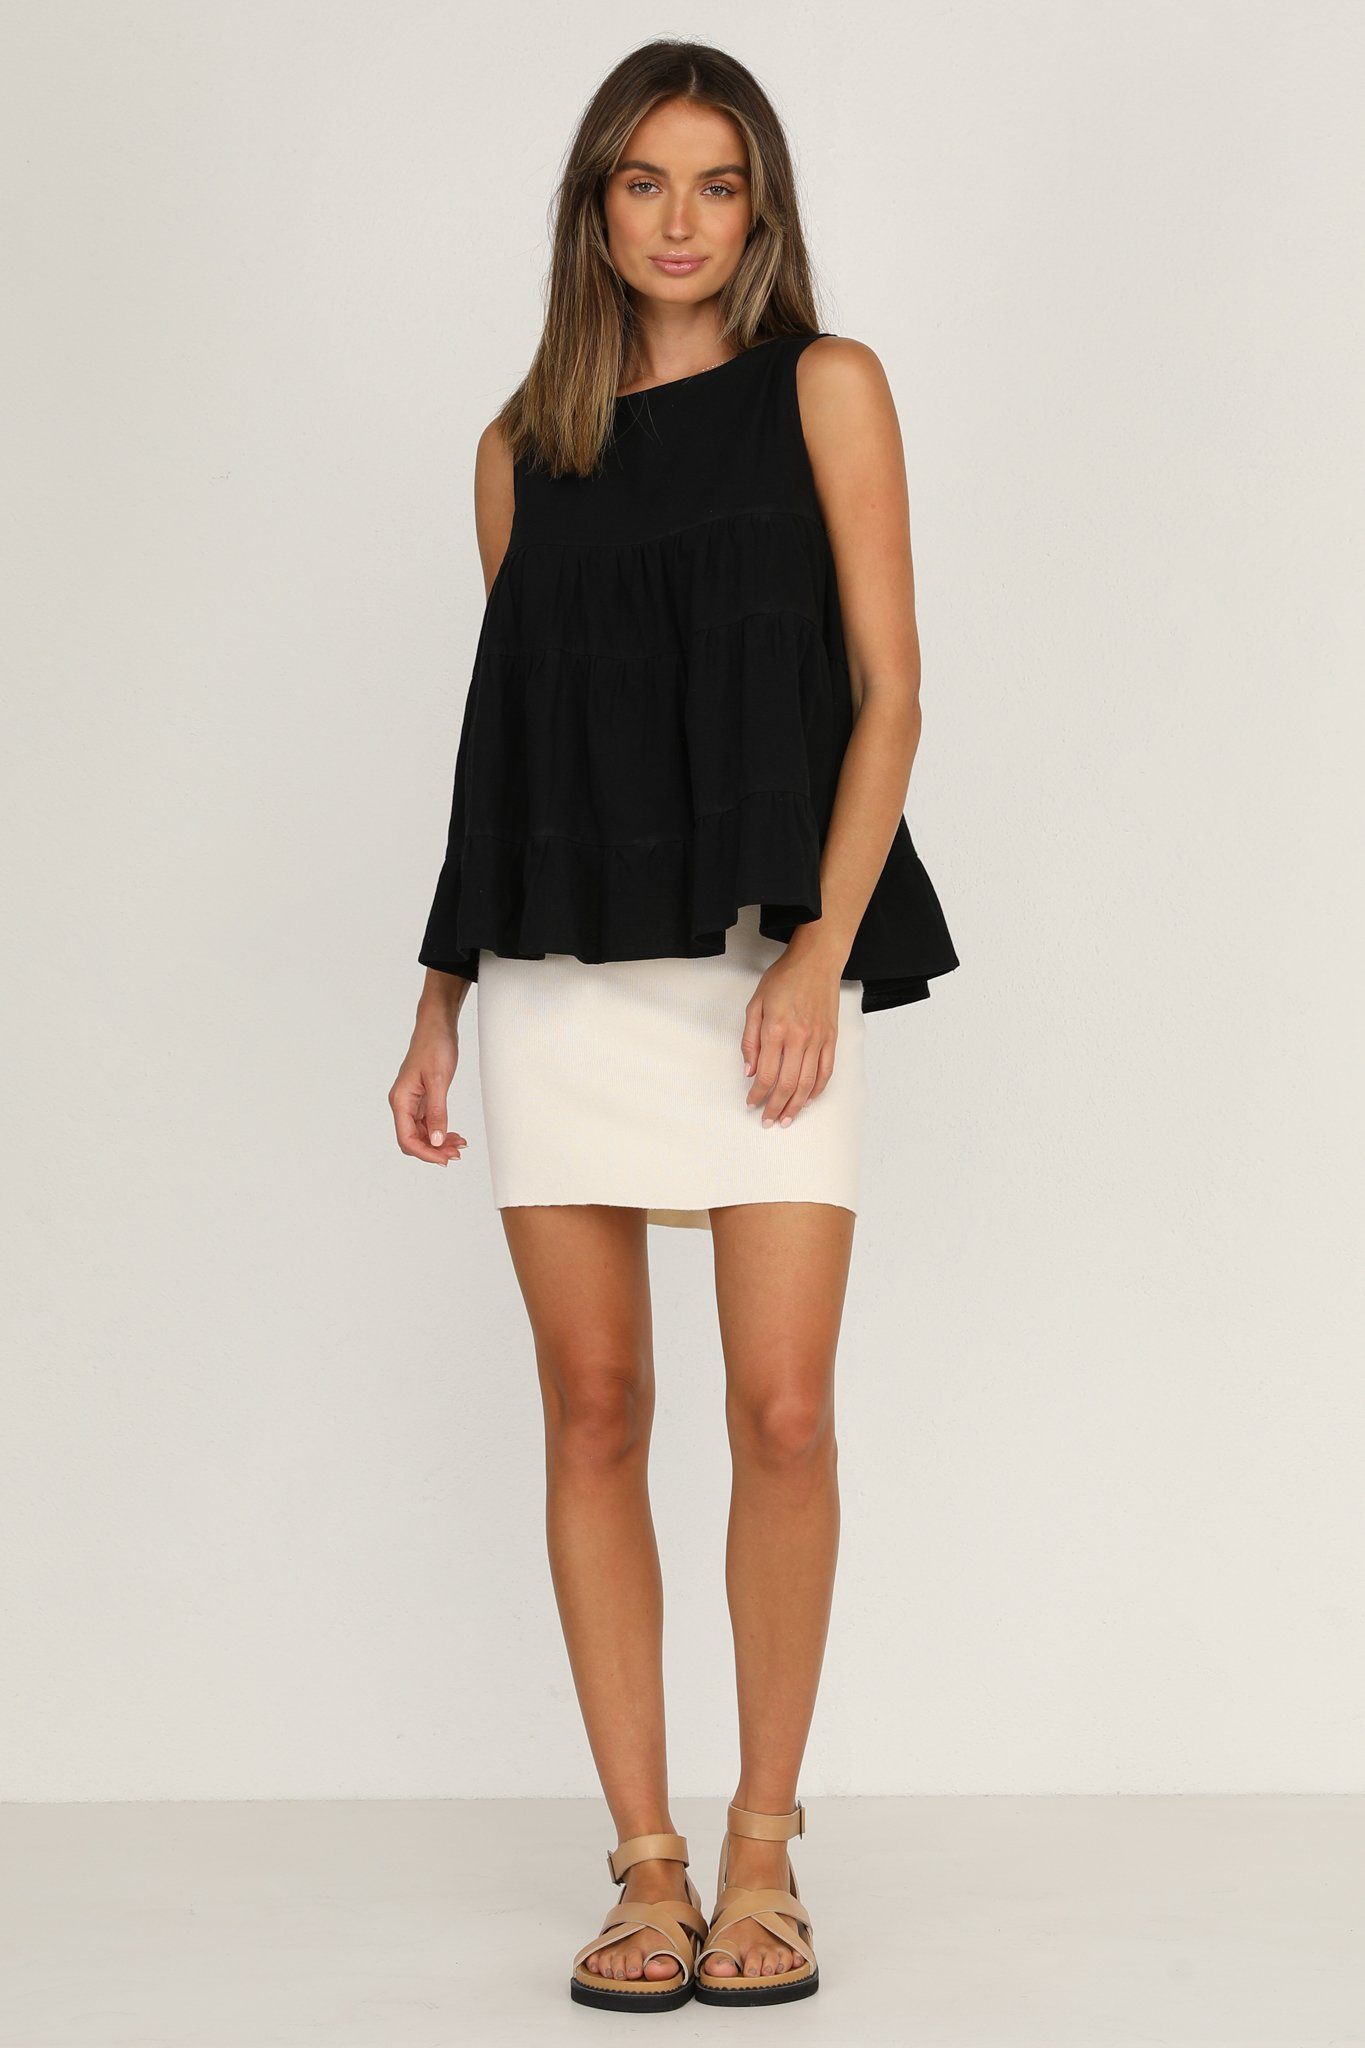 ZNX CLOTHING |  Women Tiered Solid Black Top